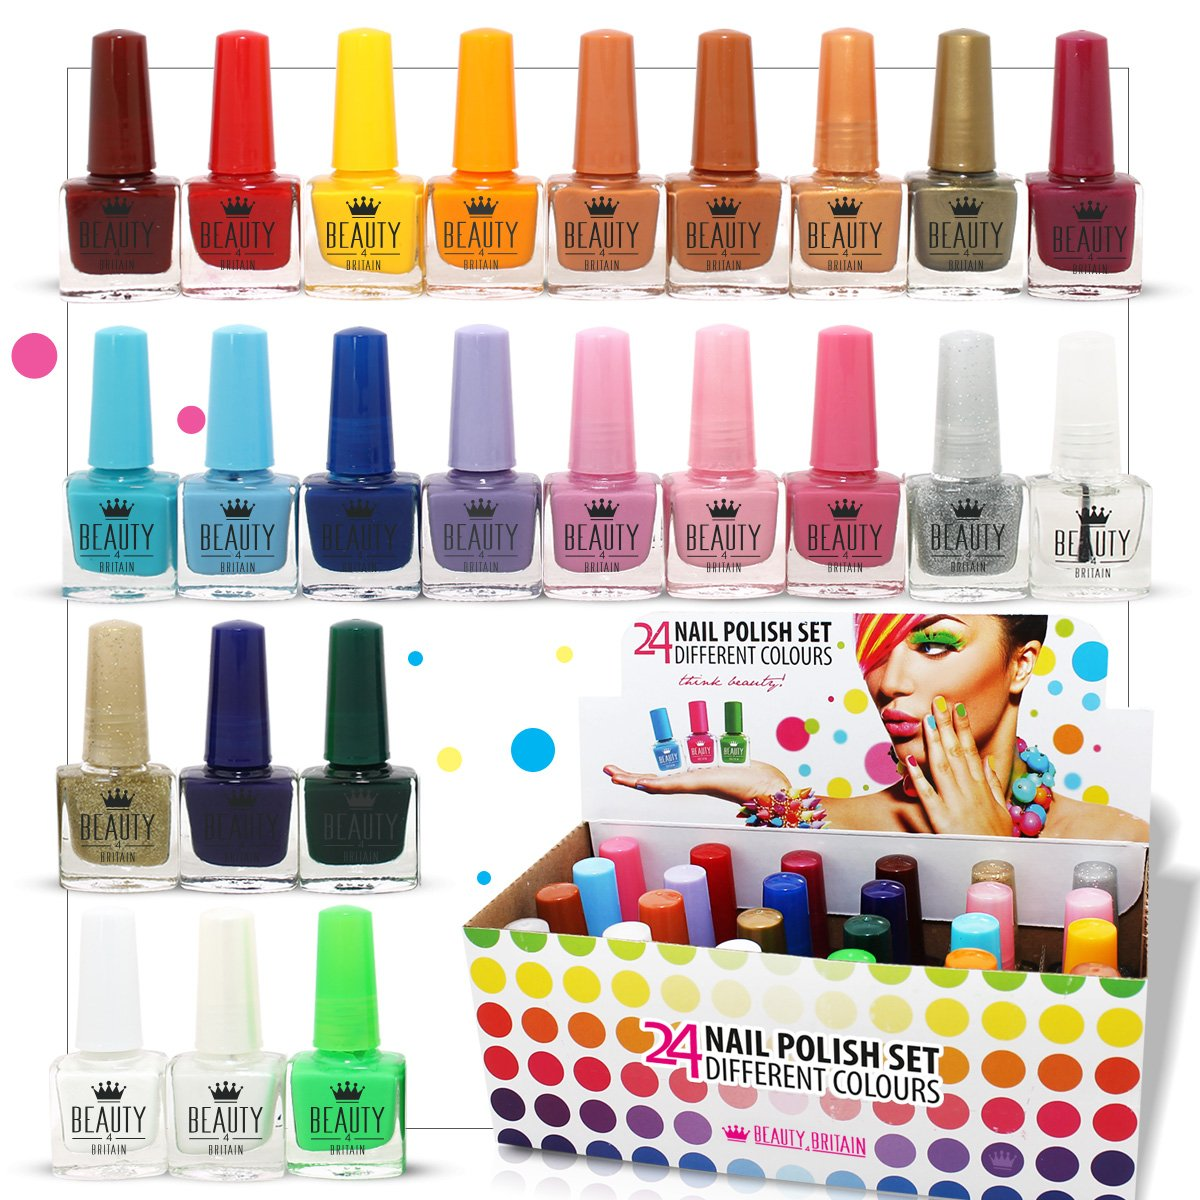 24 x NAIL POLISH VARNISH (SET B) 24 DIFFERENT COLOURS THE BEST GIFT ...